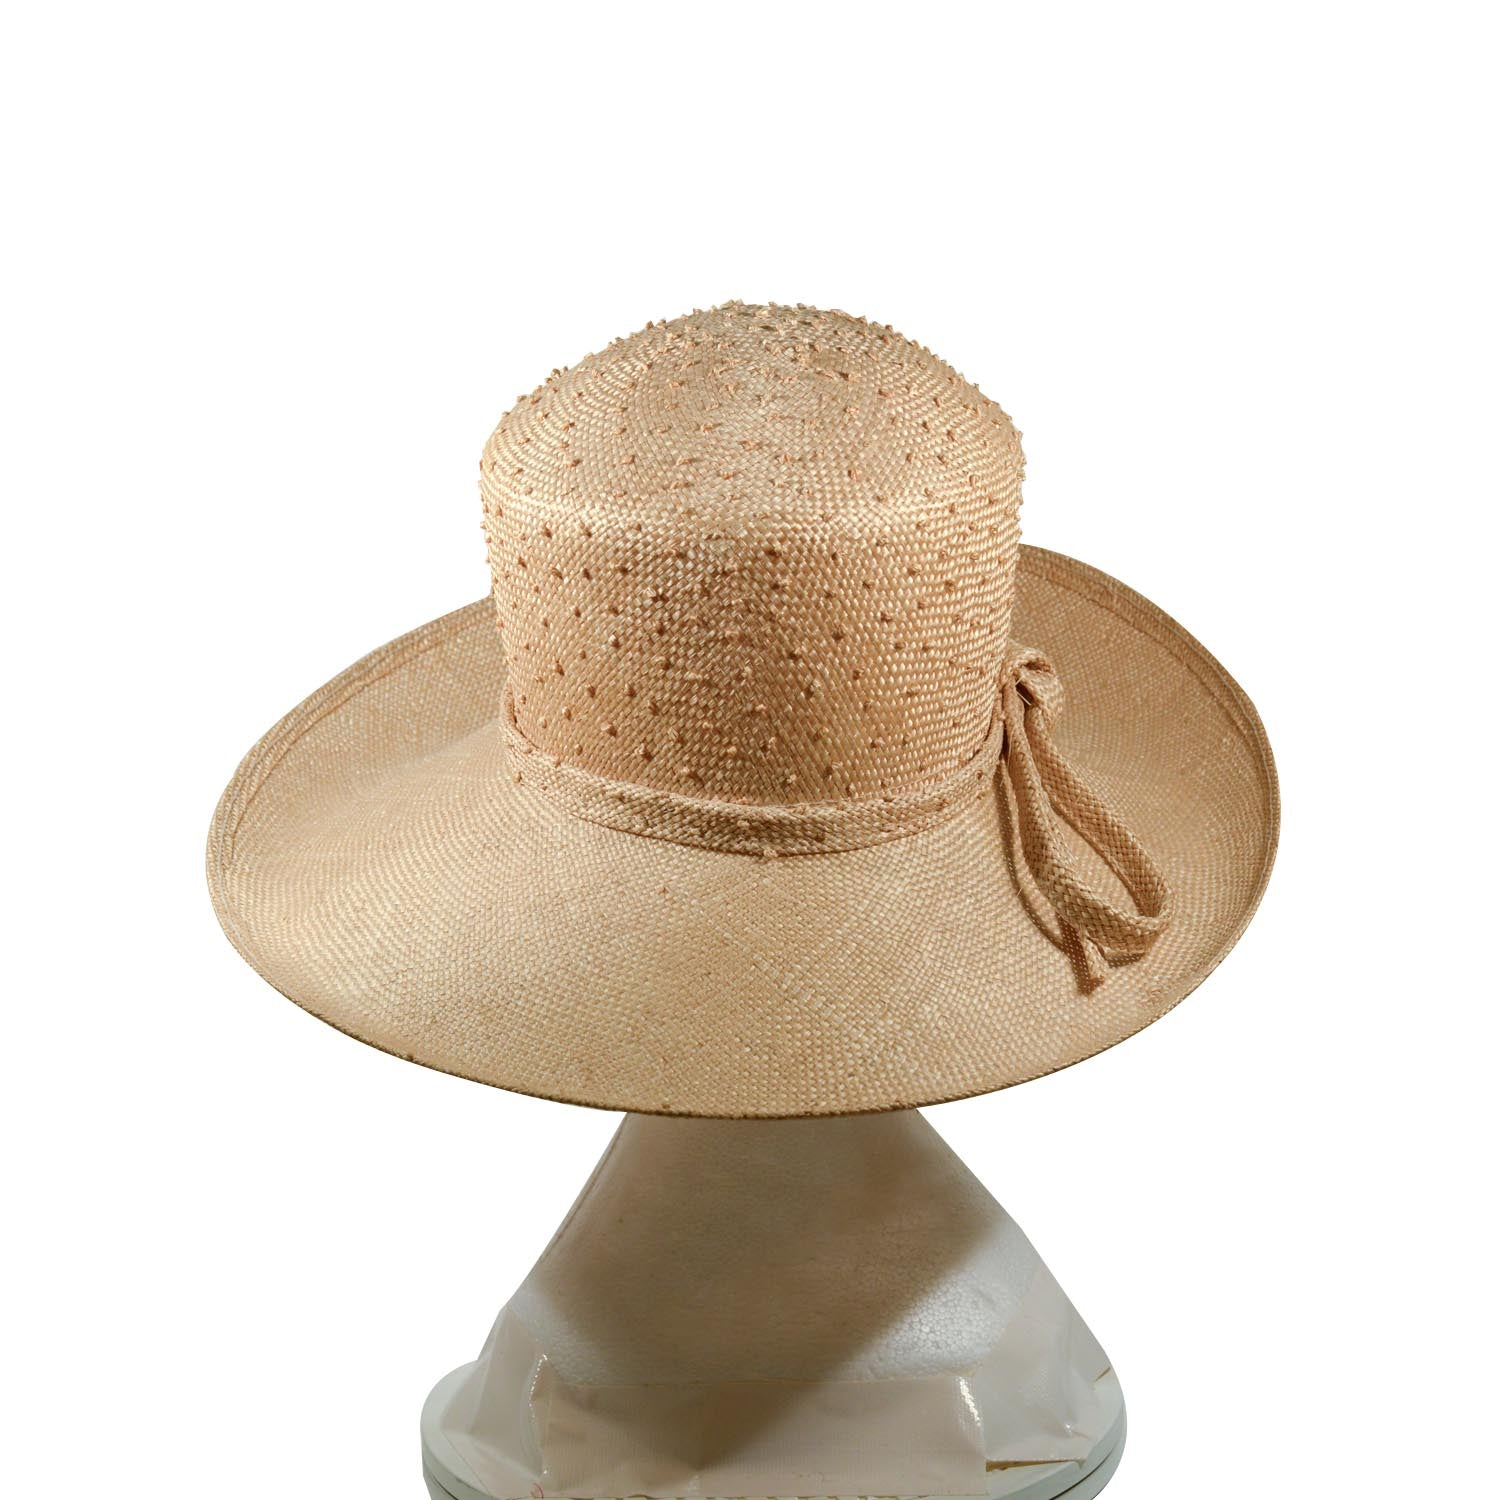 Cream English beautiful straw hat high crown knotted and straw bow trim